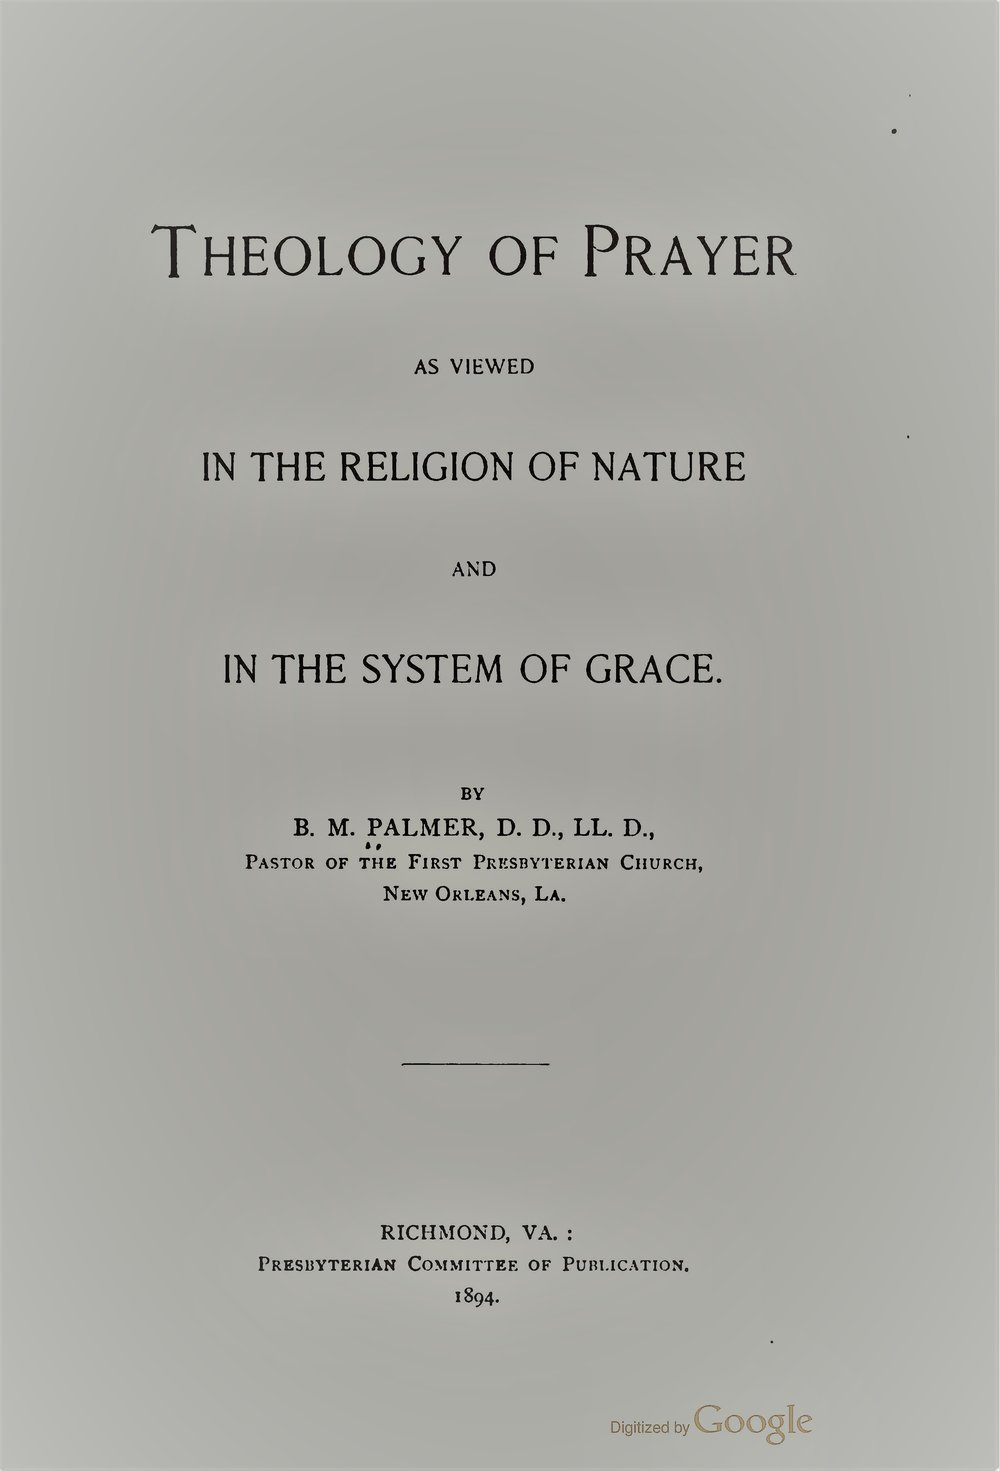 Palmer, Benjamin Morgan - Theology of Prayer.jpg